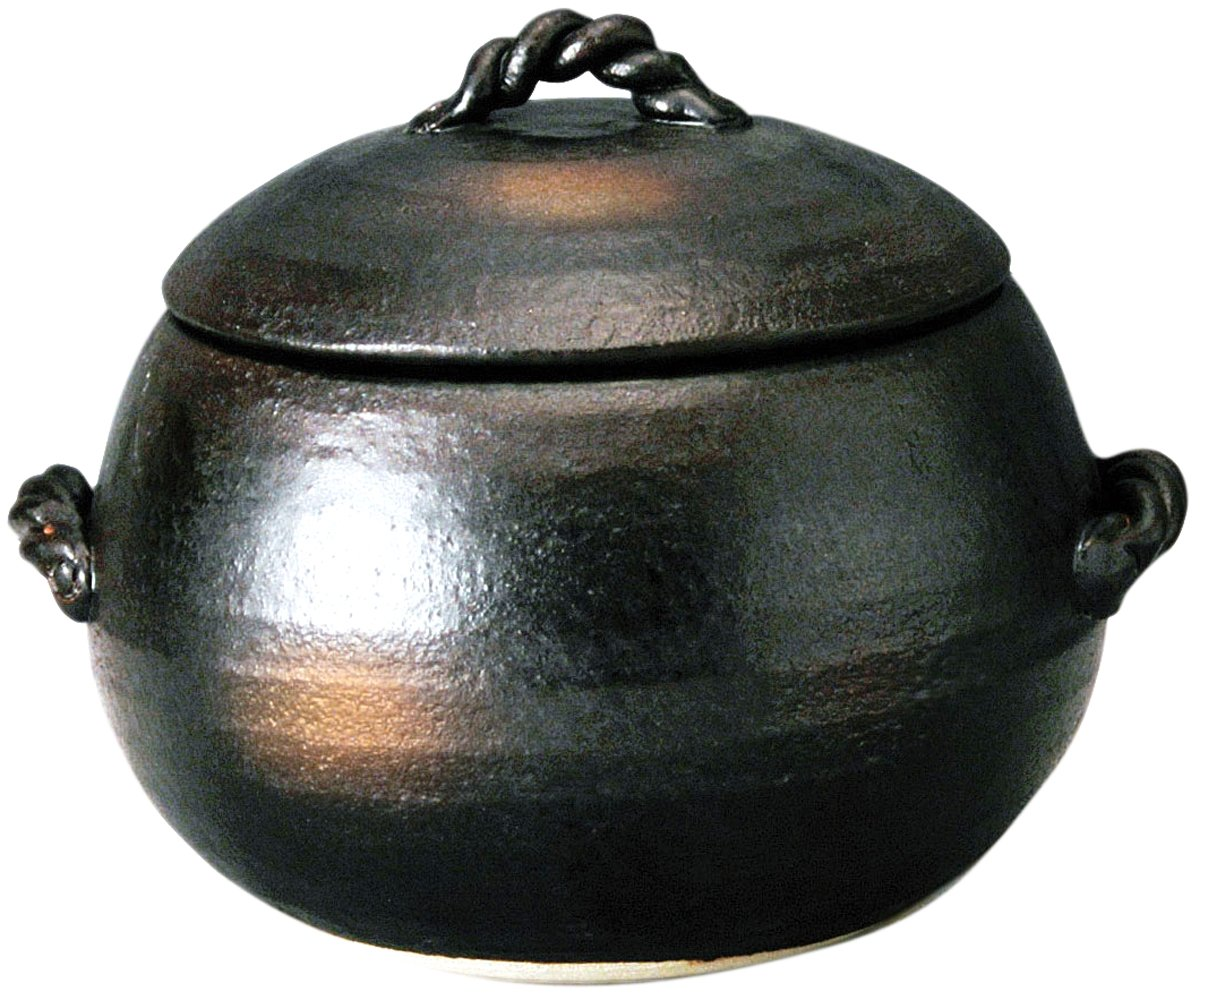 Yorozufuru-sho rice pot - 3 people cook Iga wind M4806